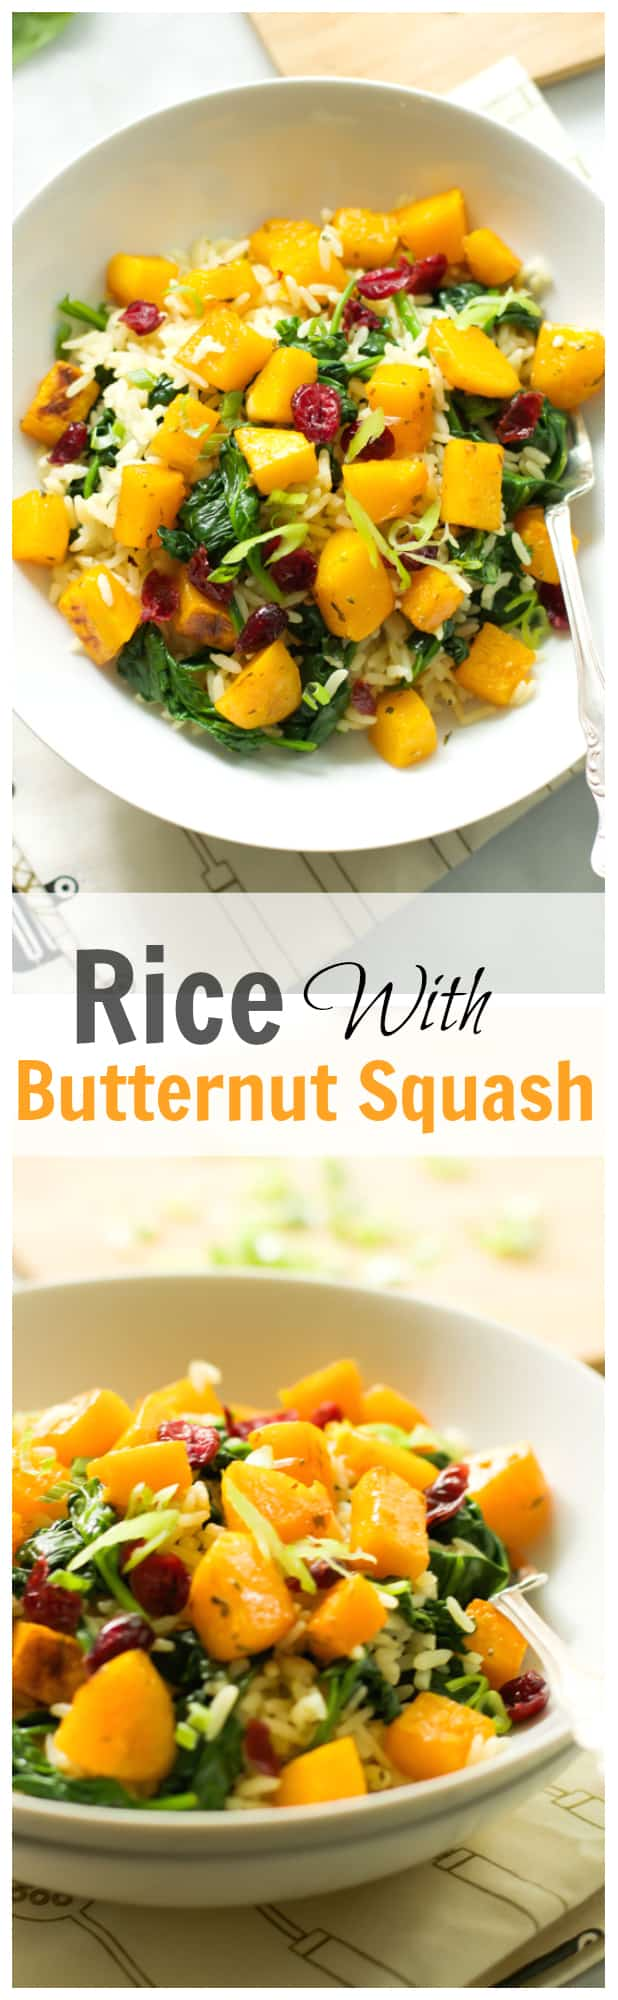 Rice with Butternut Squash